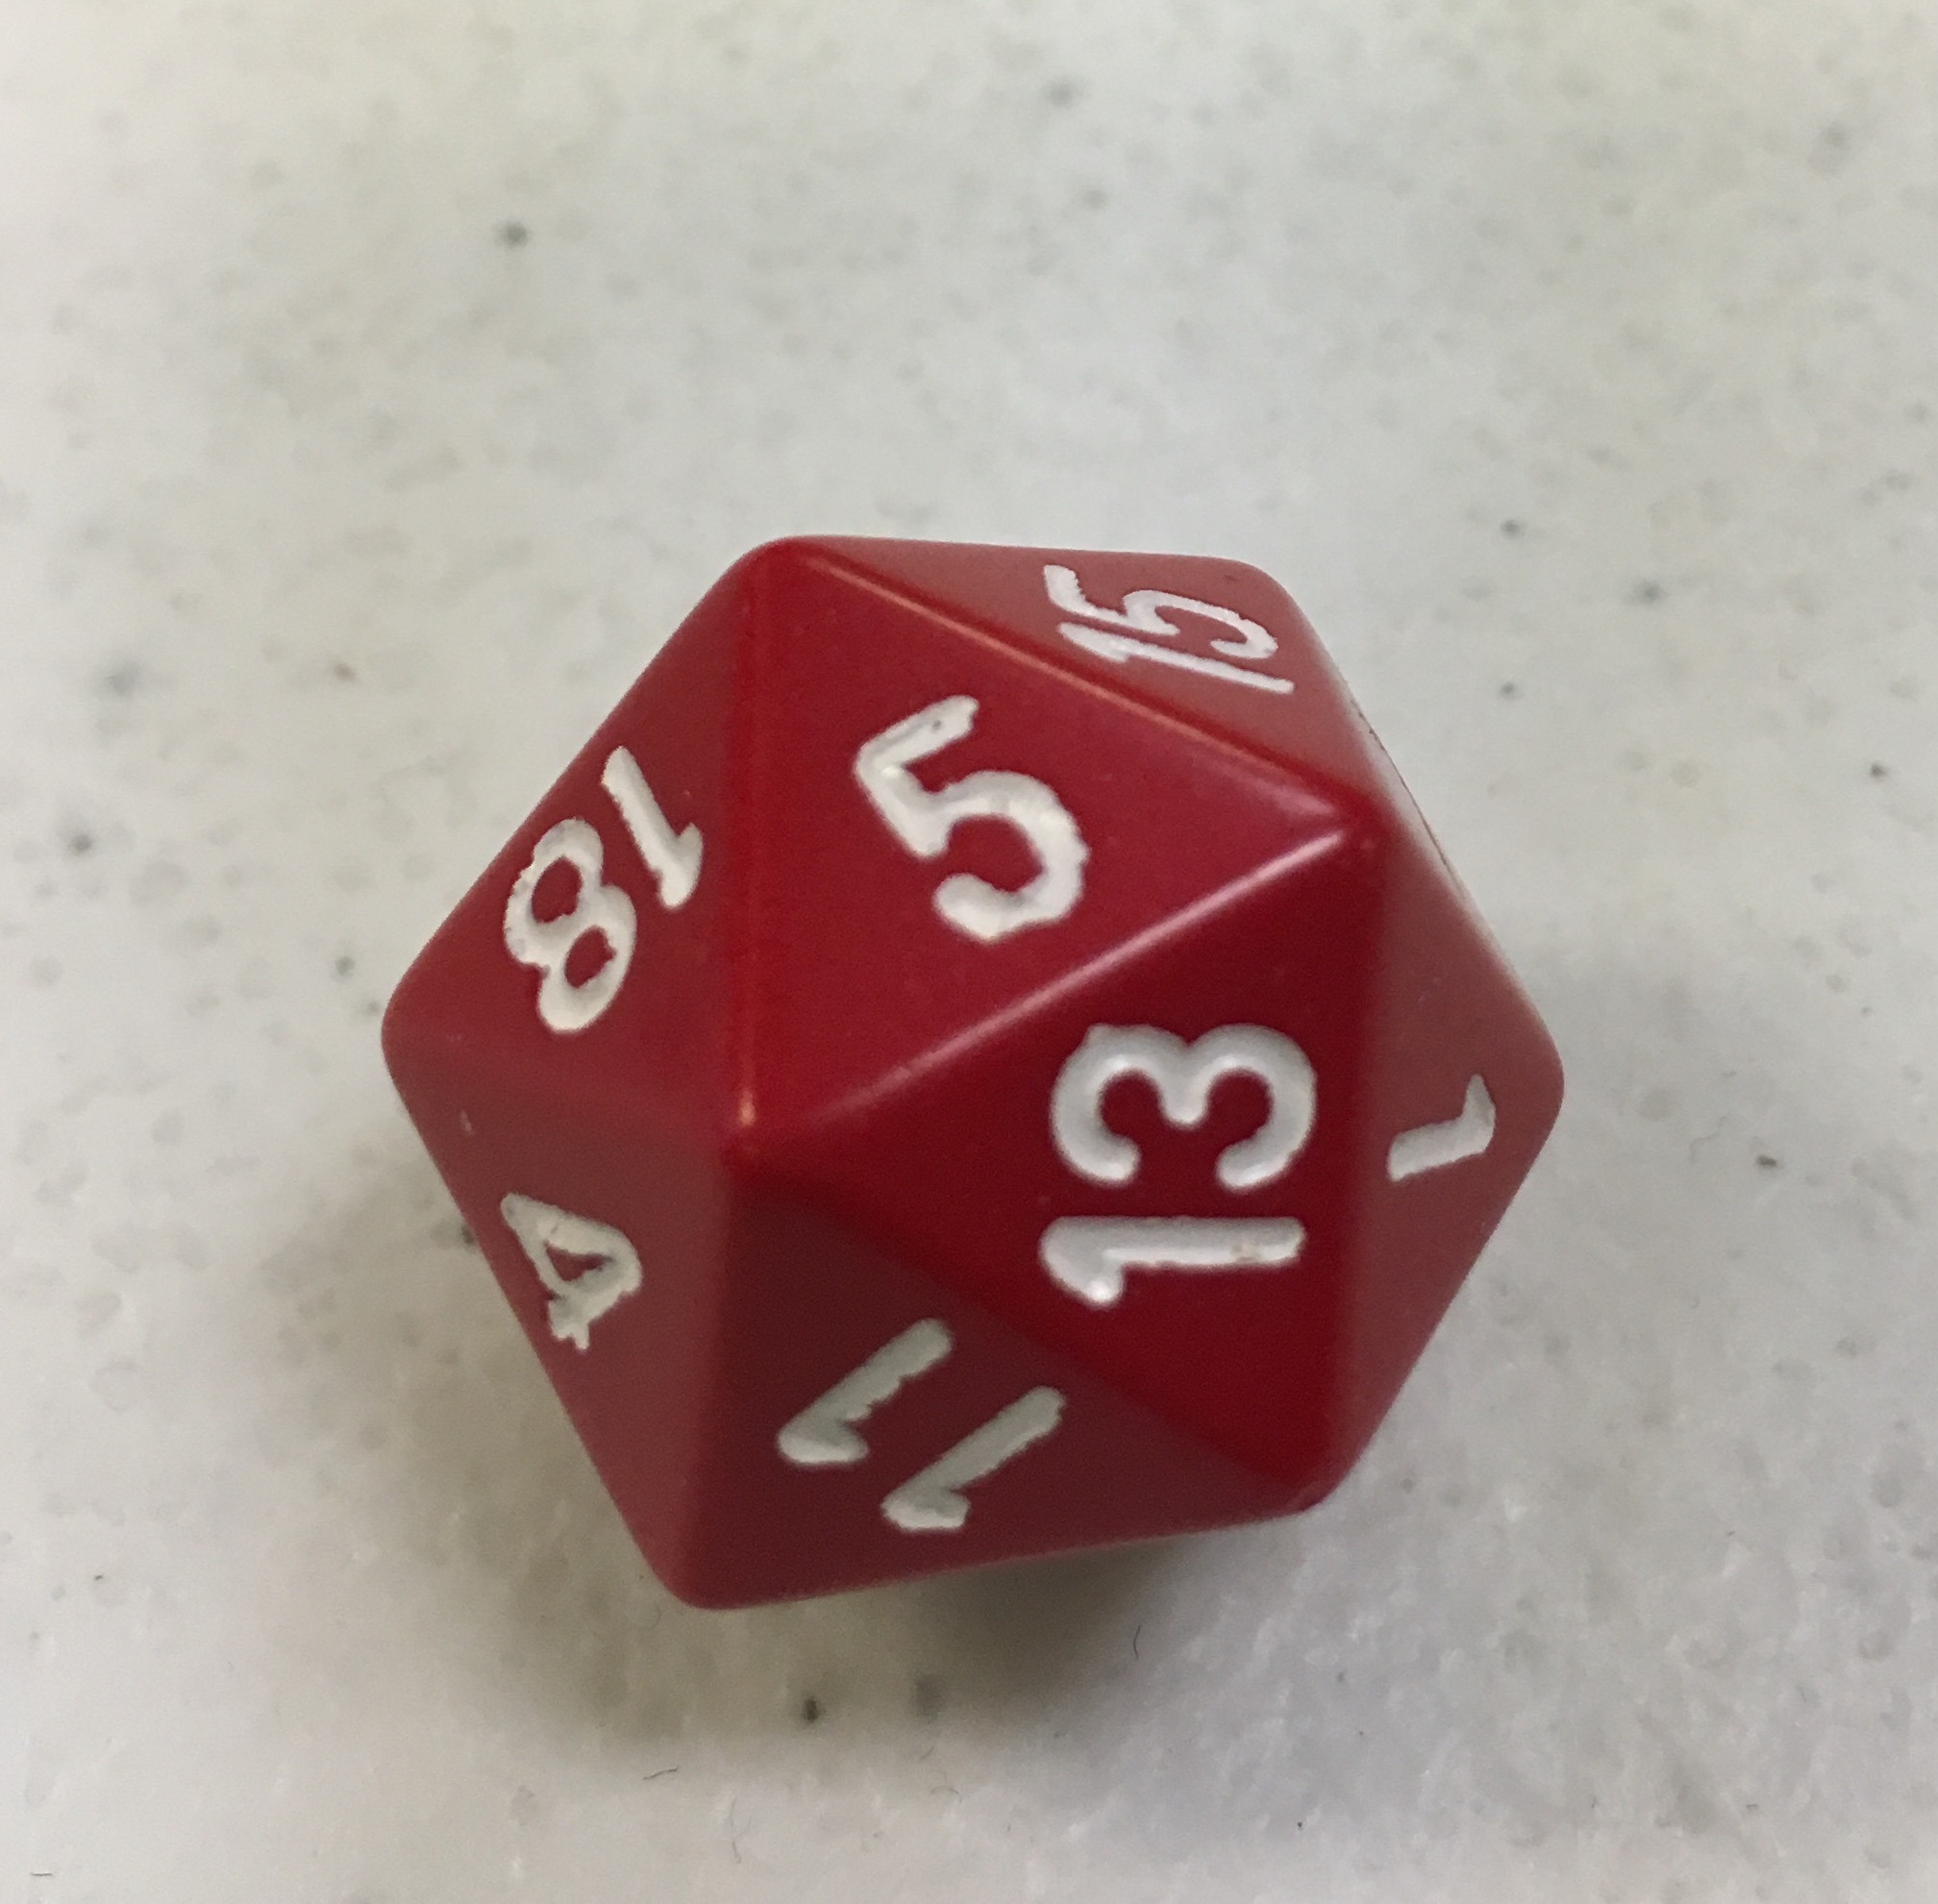 A color photo of a red twenty-sided die